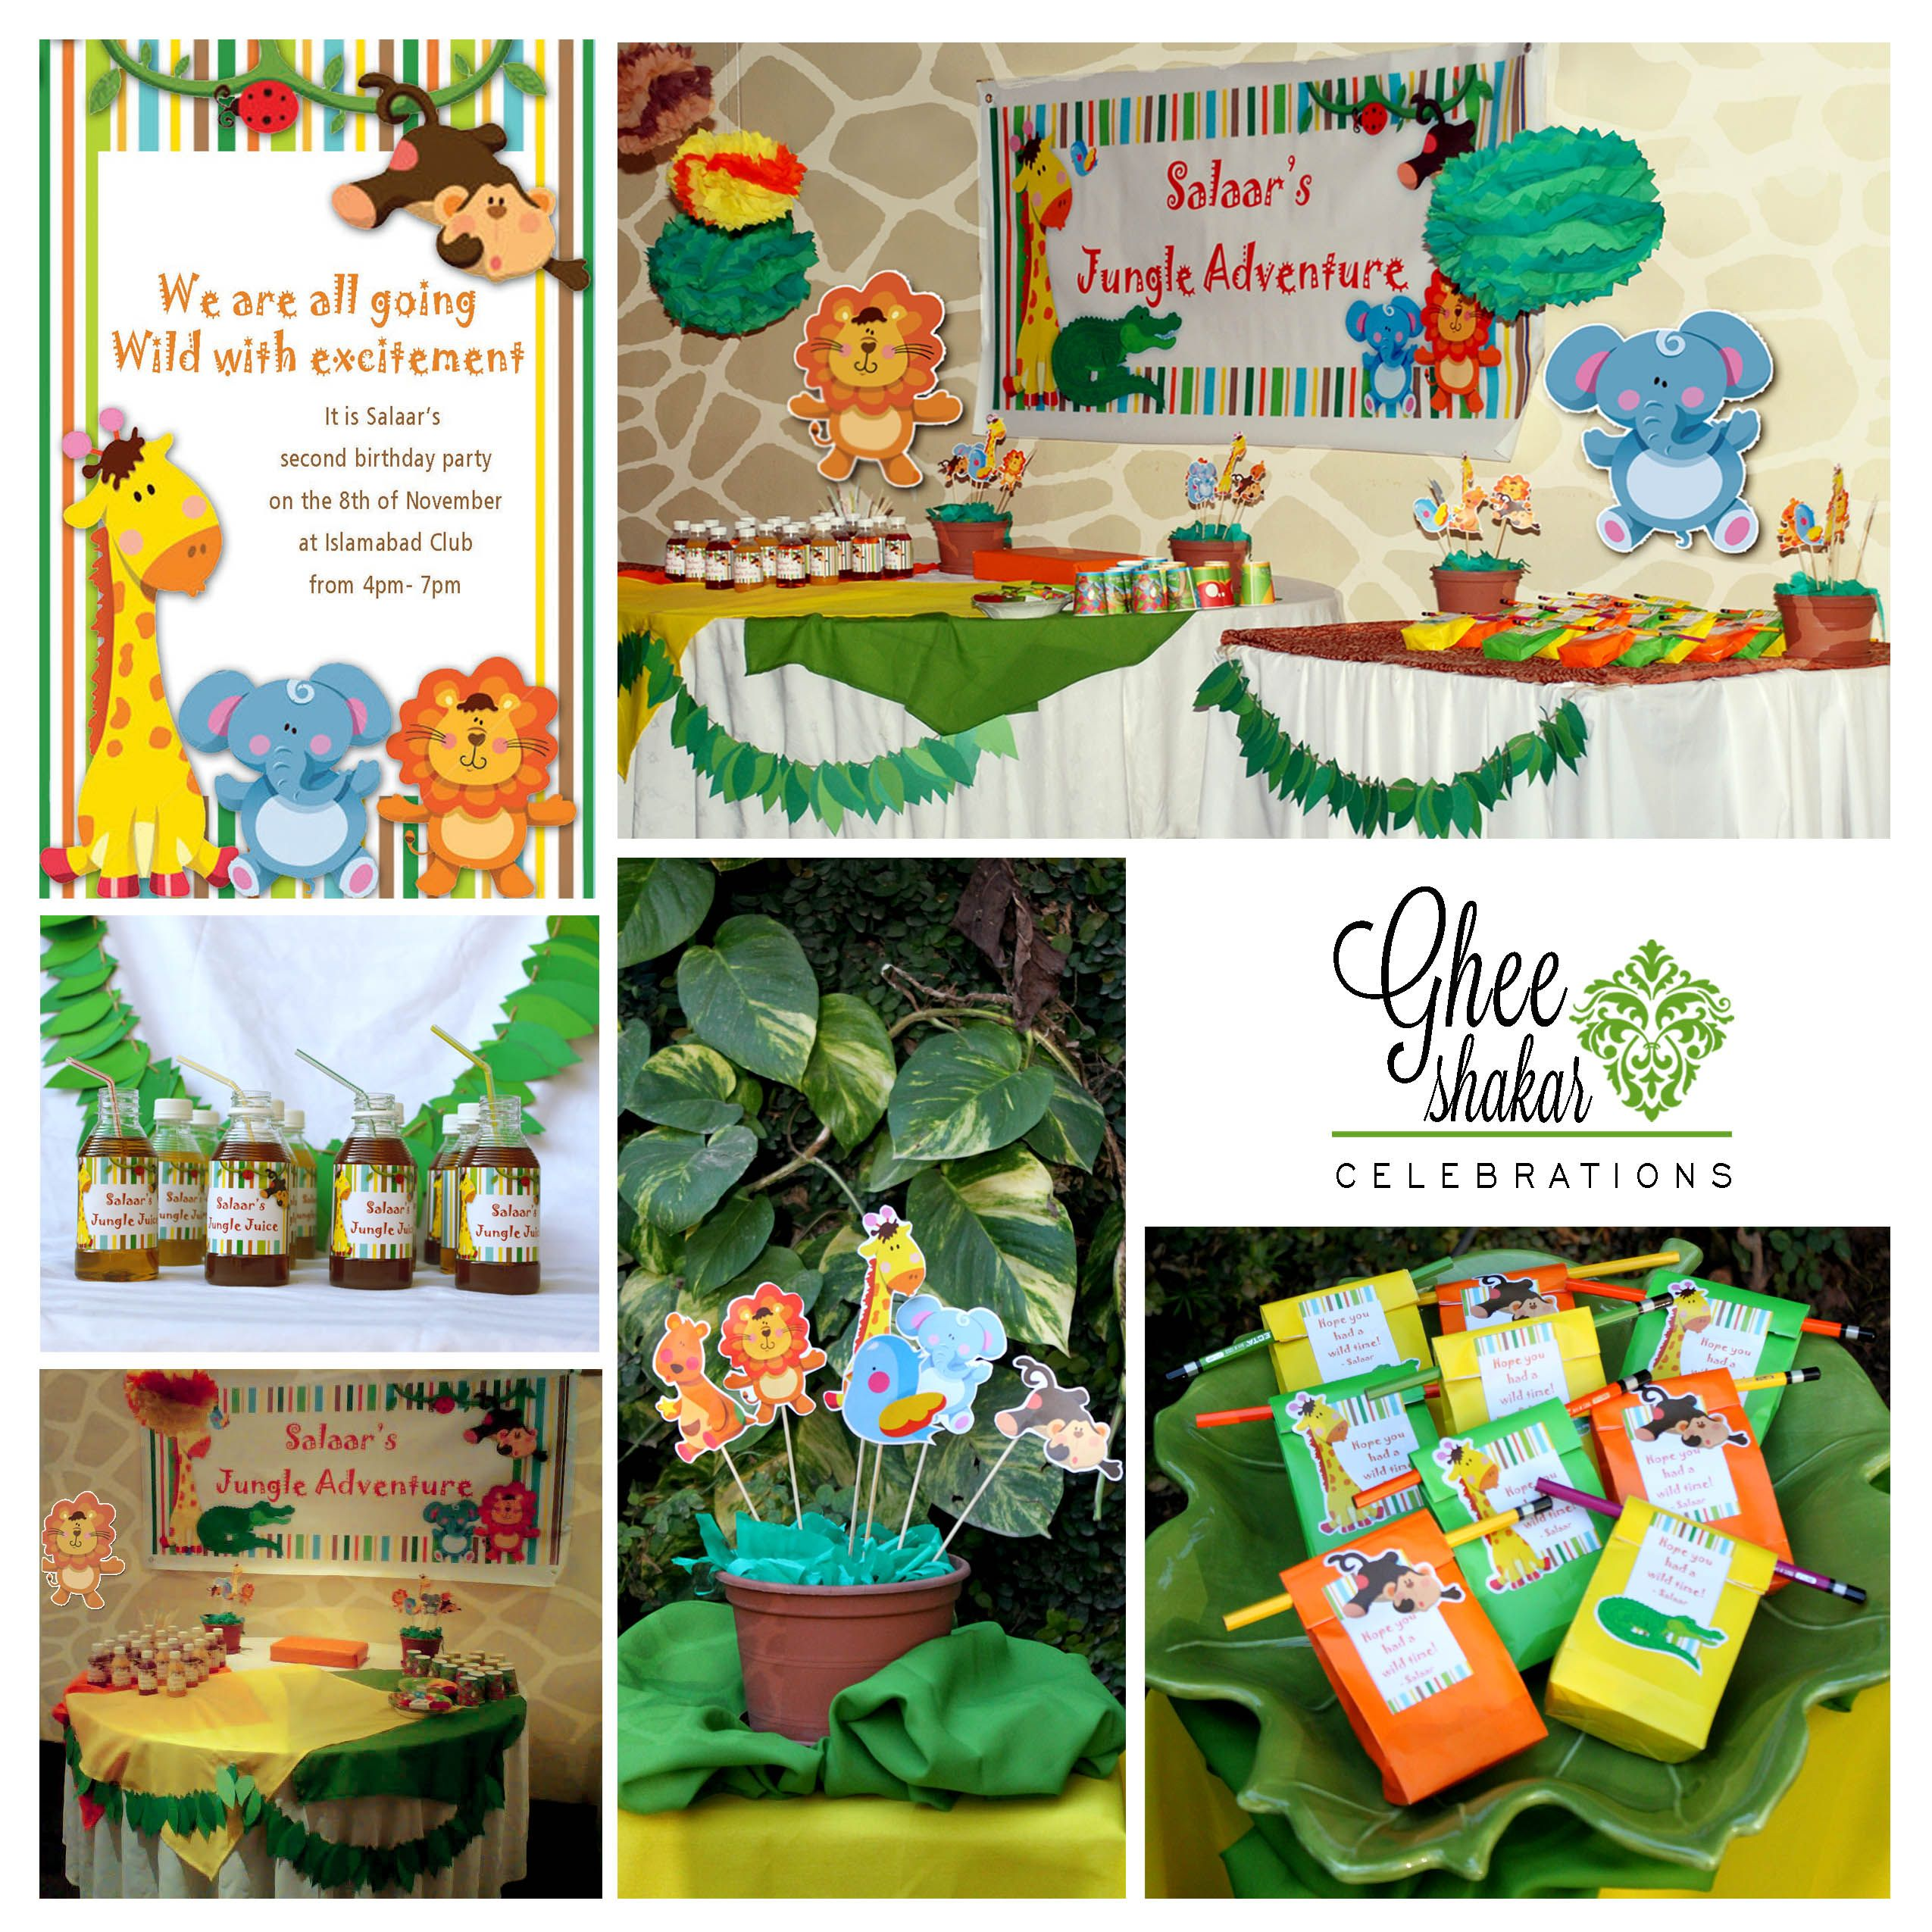 Cute Jungle Themed Birthday Party Decor For 2 Year Old Goodybags Centerpieces Juicebottles